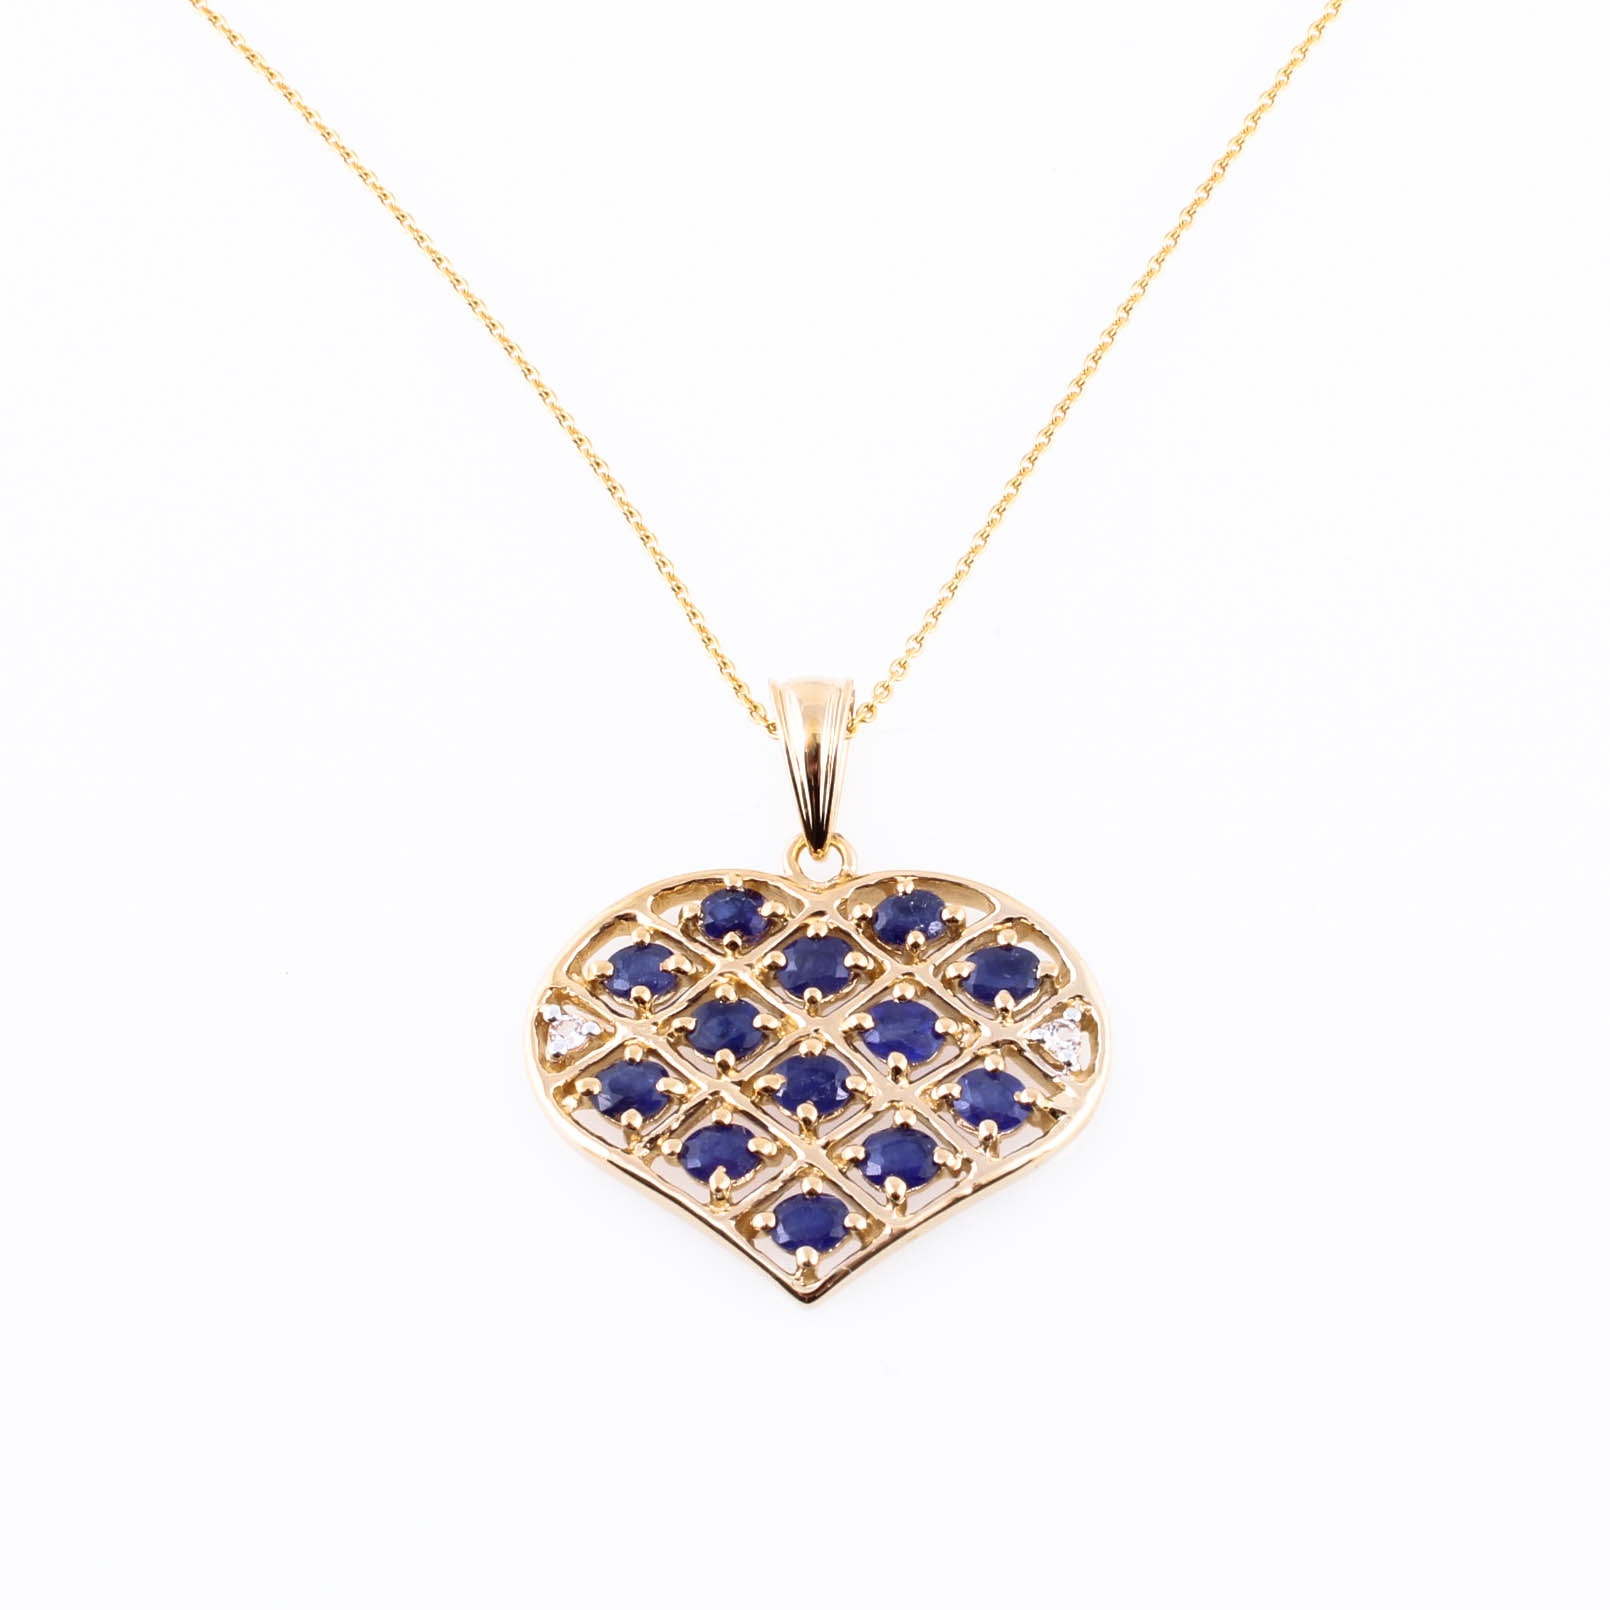 Sterling Silver with Gold Wash Heart Pendant with Sapphires and White Topaz